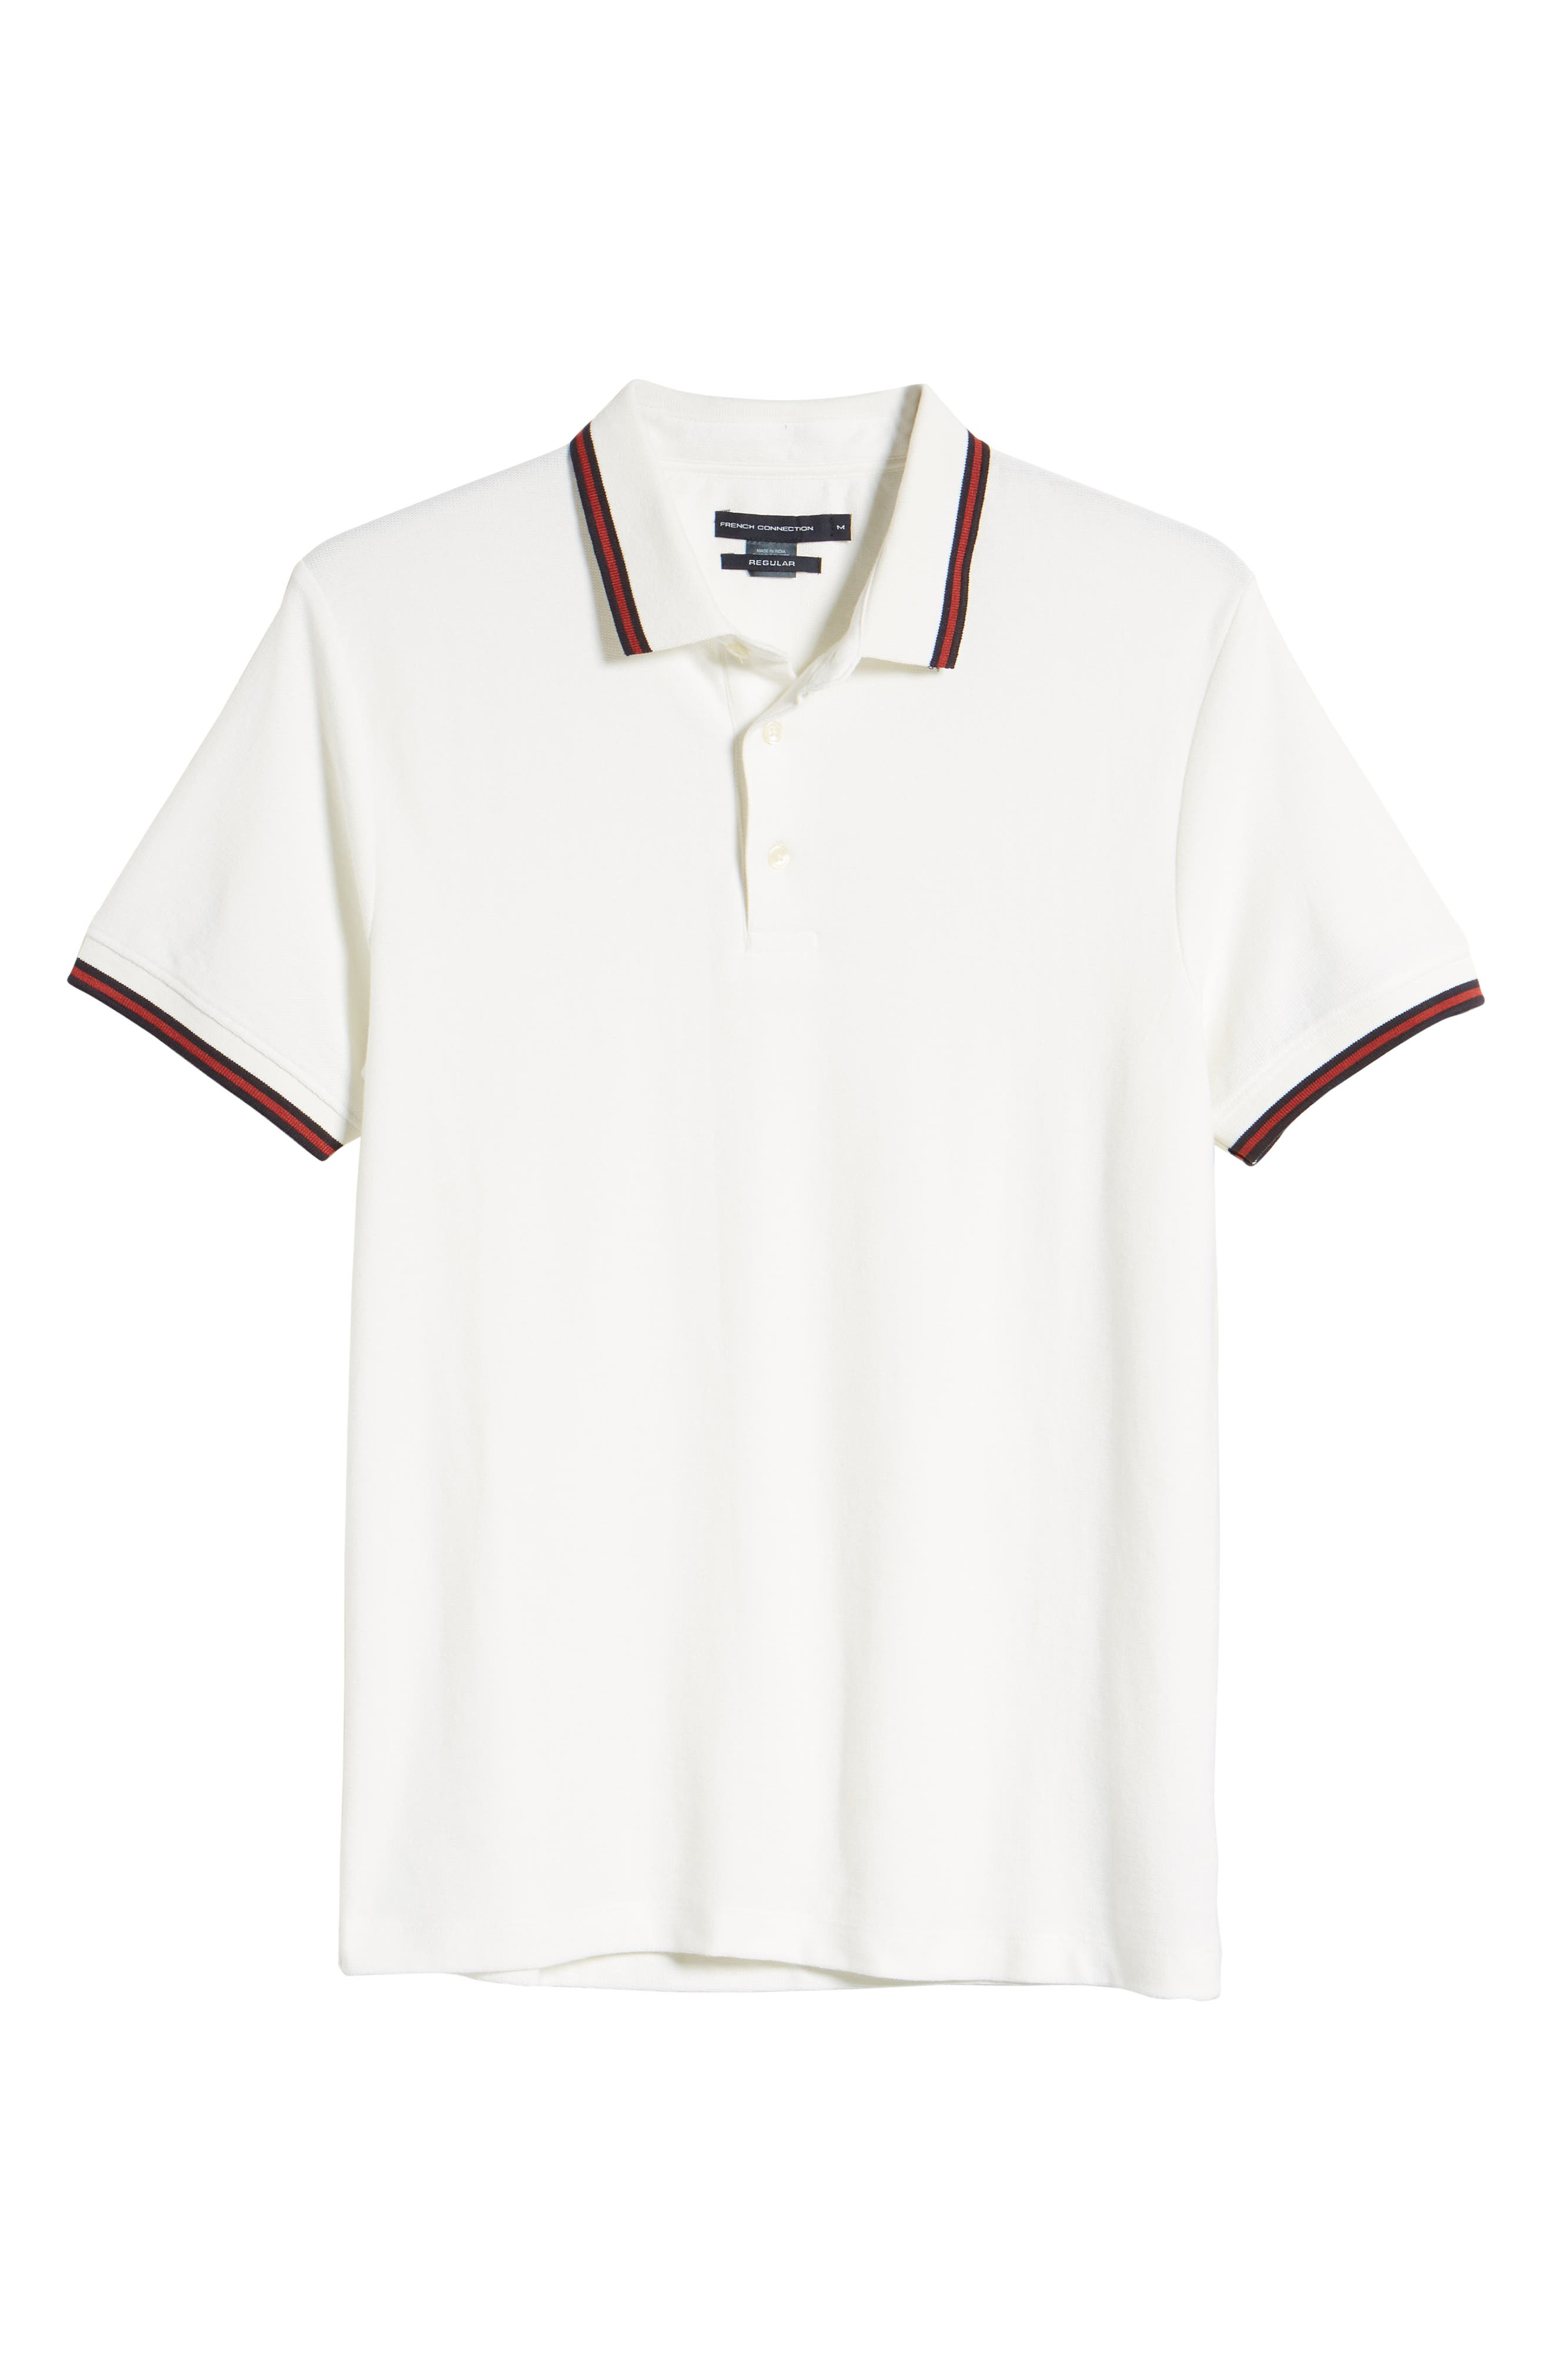 FRENCH CONNECTION, Dobby Jersey Regular Fit Polo, Alternate thumbnail 6, color, MILK BRICK RED